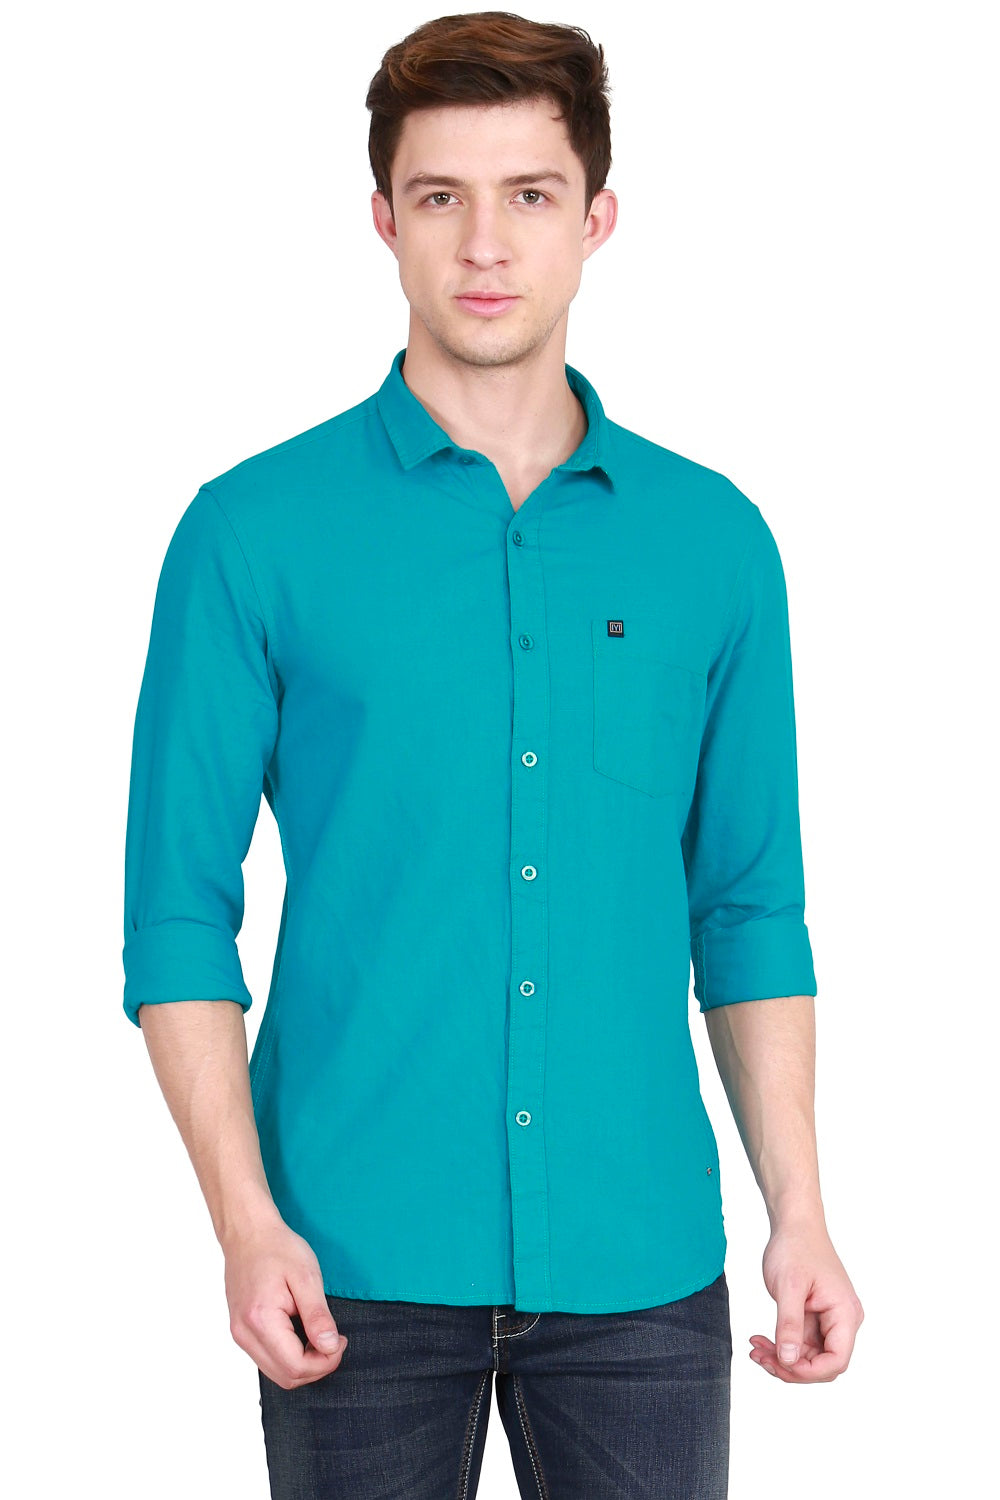 IMYOUNG Men's Solid Green Cotton Linen Casual Shirt